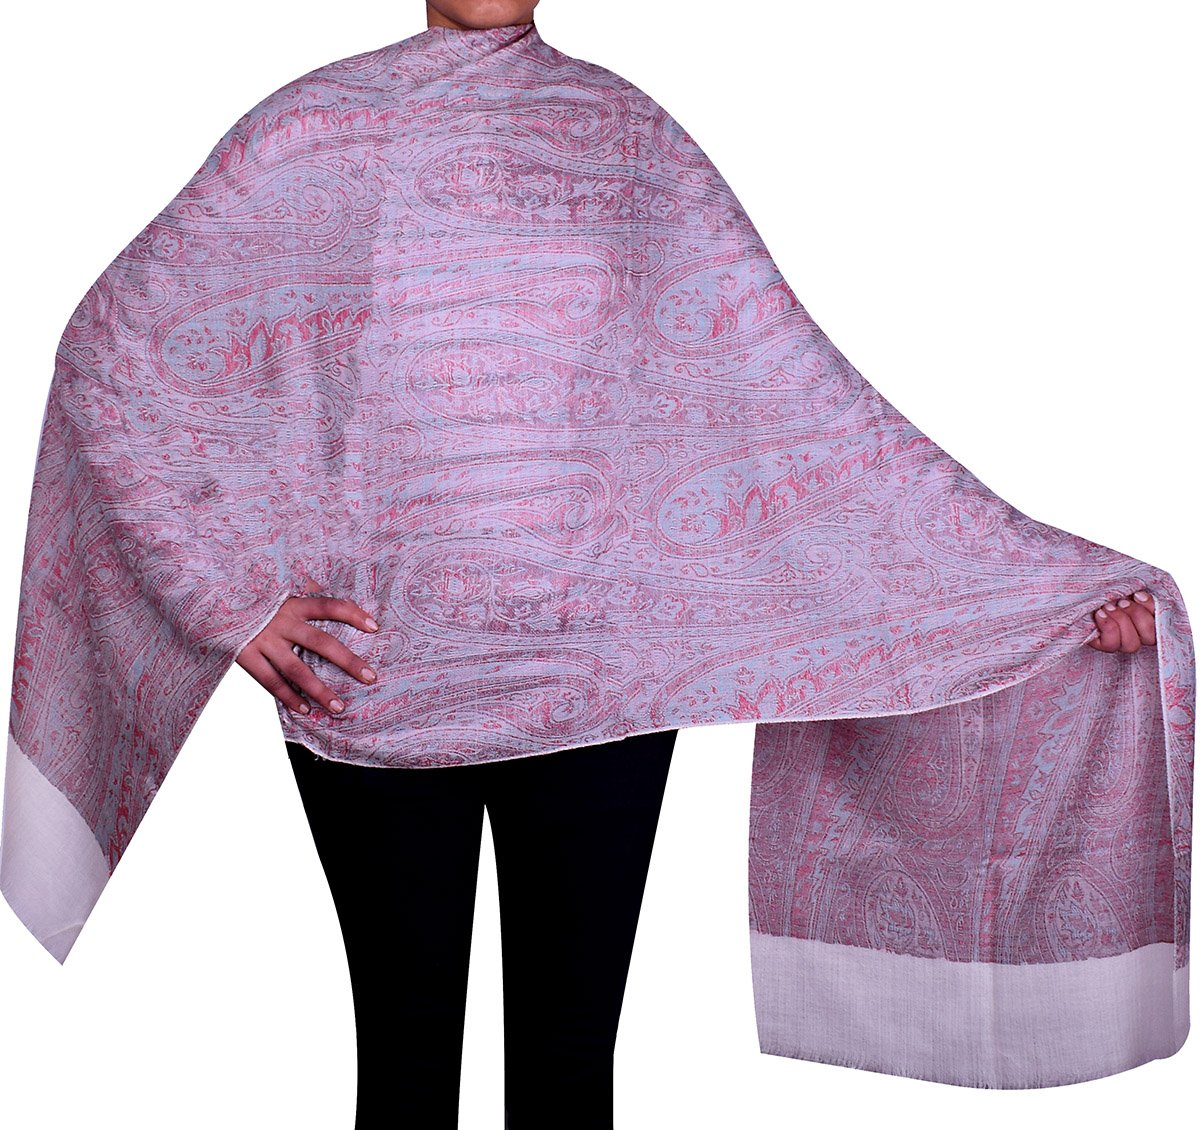 Women's Gift Paisley Wool Shawl Wrap India Clothing (80 x 40 inches) Maple Clothing shwl441813a